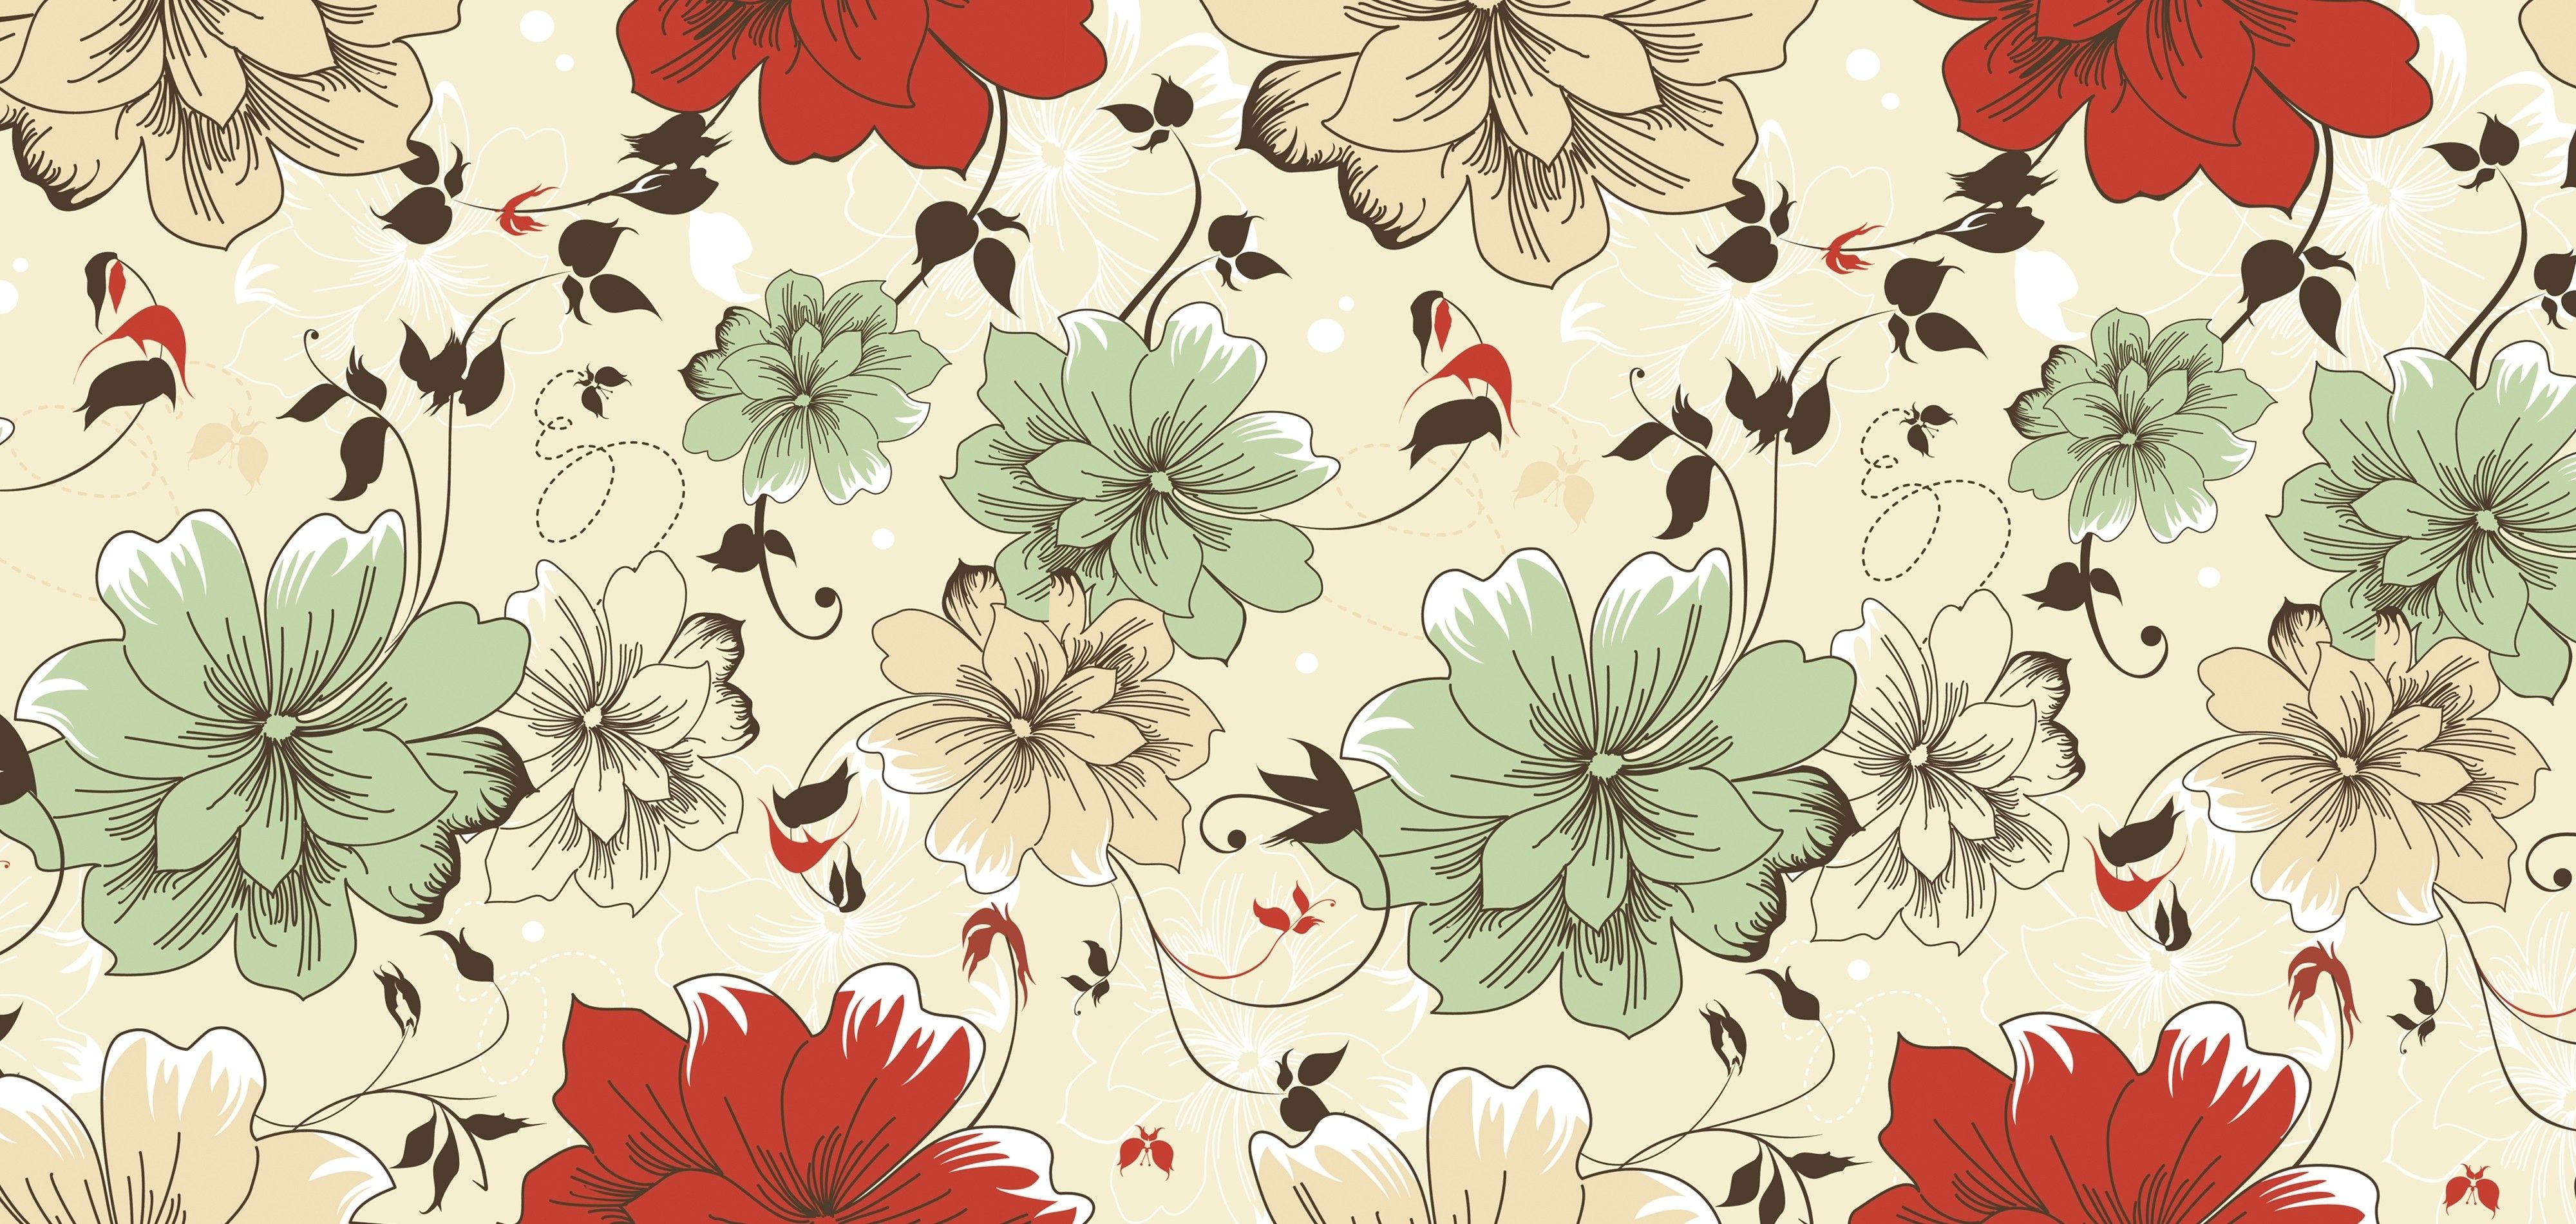 Wall Paper Patterns floral retro pattern desktop wallpaper | tatts | pinterest